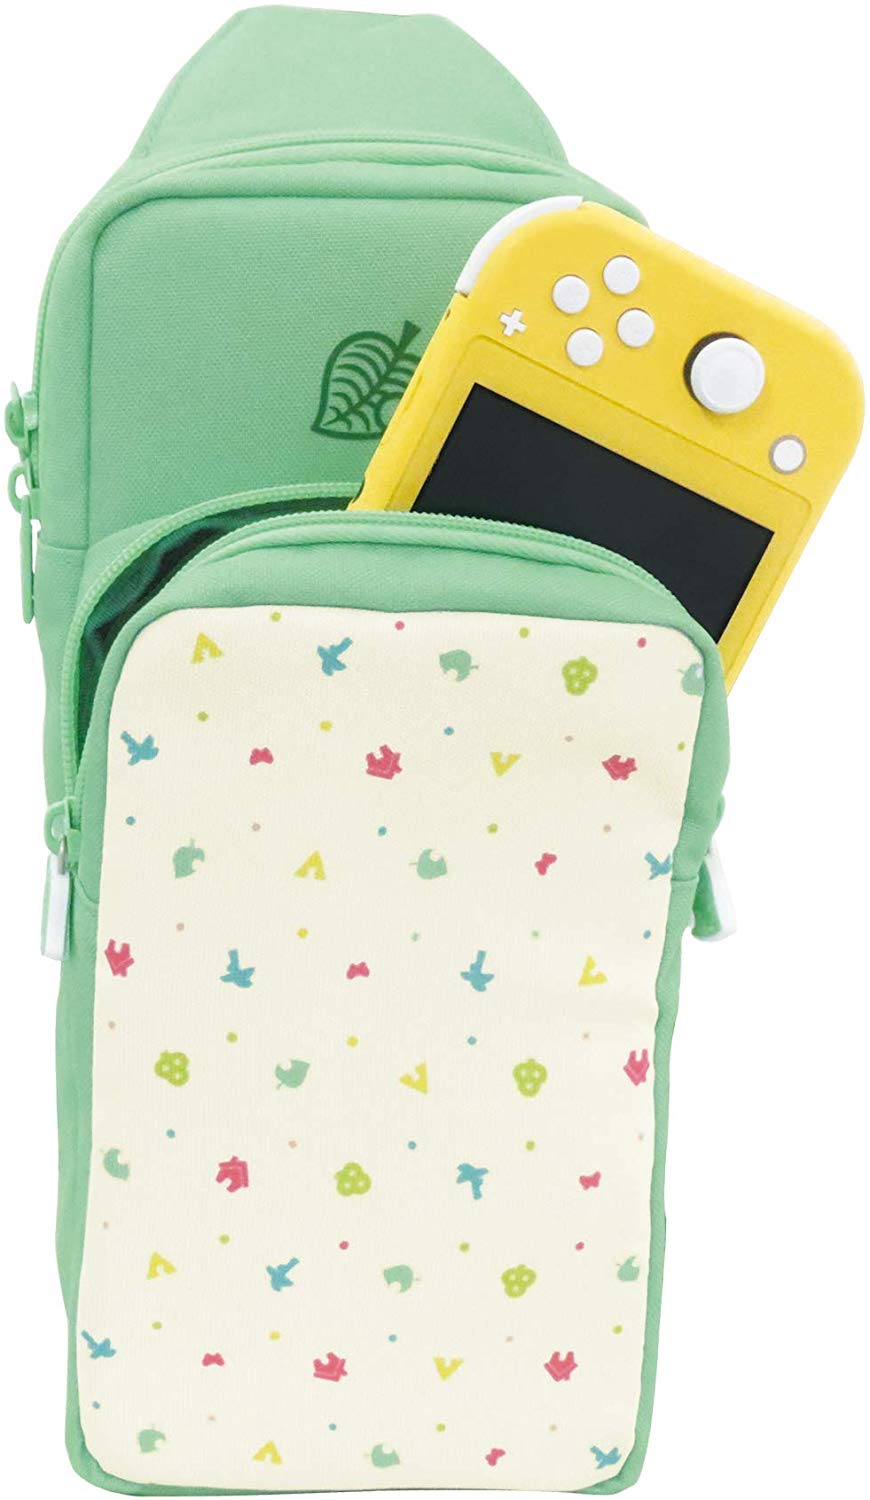 Restock Official Animal Crossing New Horizons Accessories From